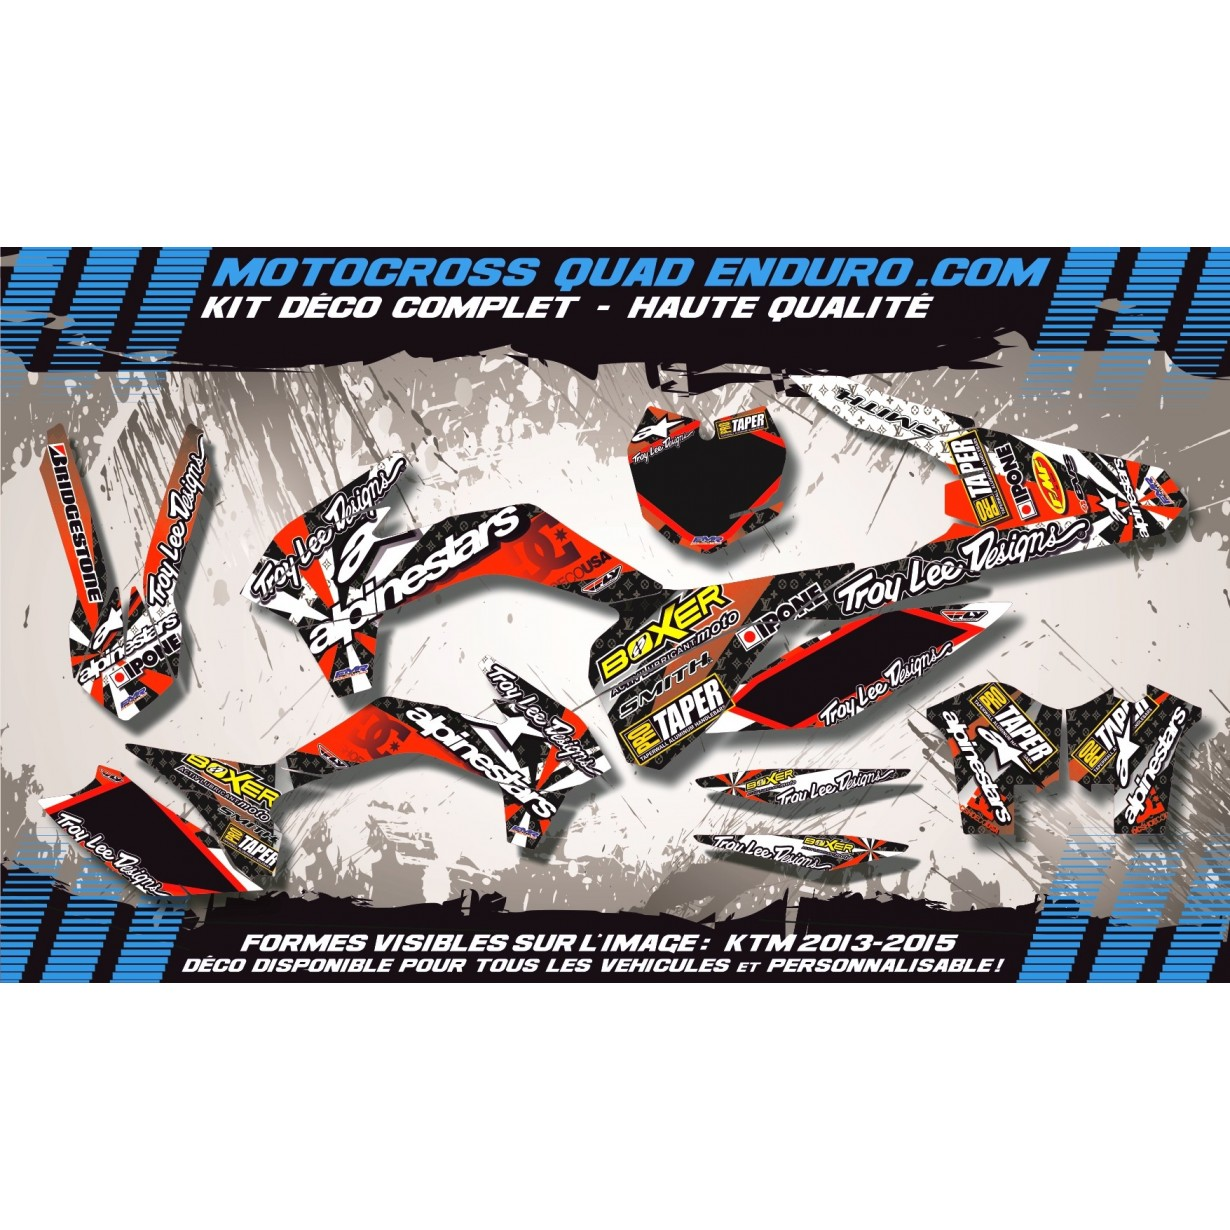 KIT DÉCO Perso 250 CR 95-96 04-15 ALPINESTARS MA4C